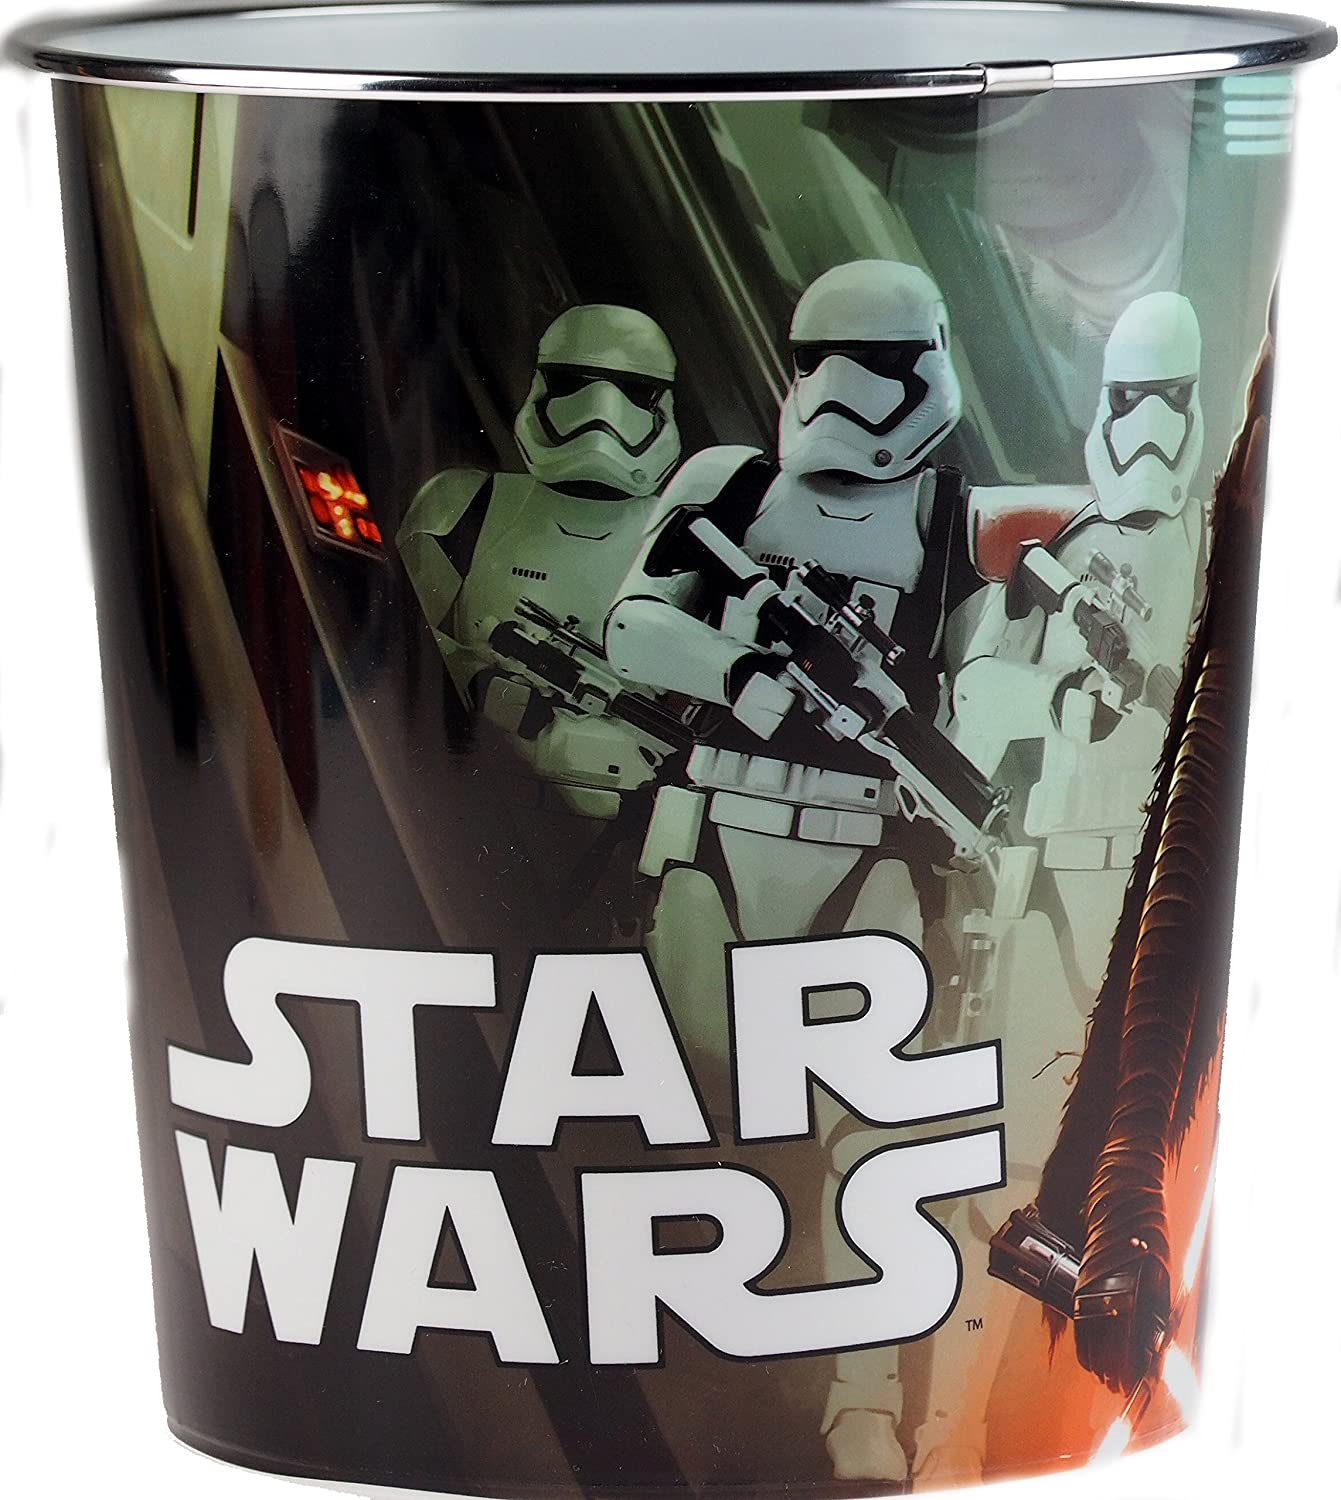 Star Wars STORMTROOPER Children's Bedroom Waste Paper Bin